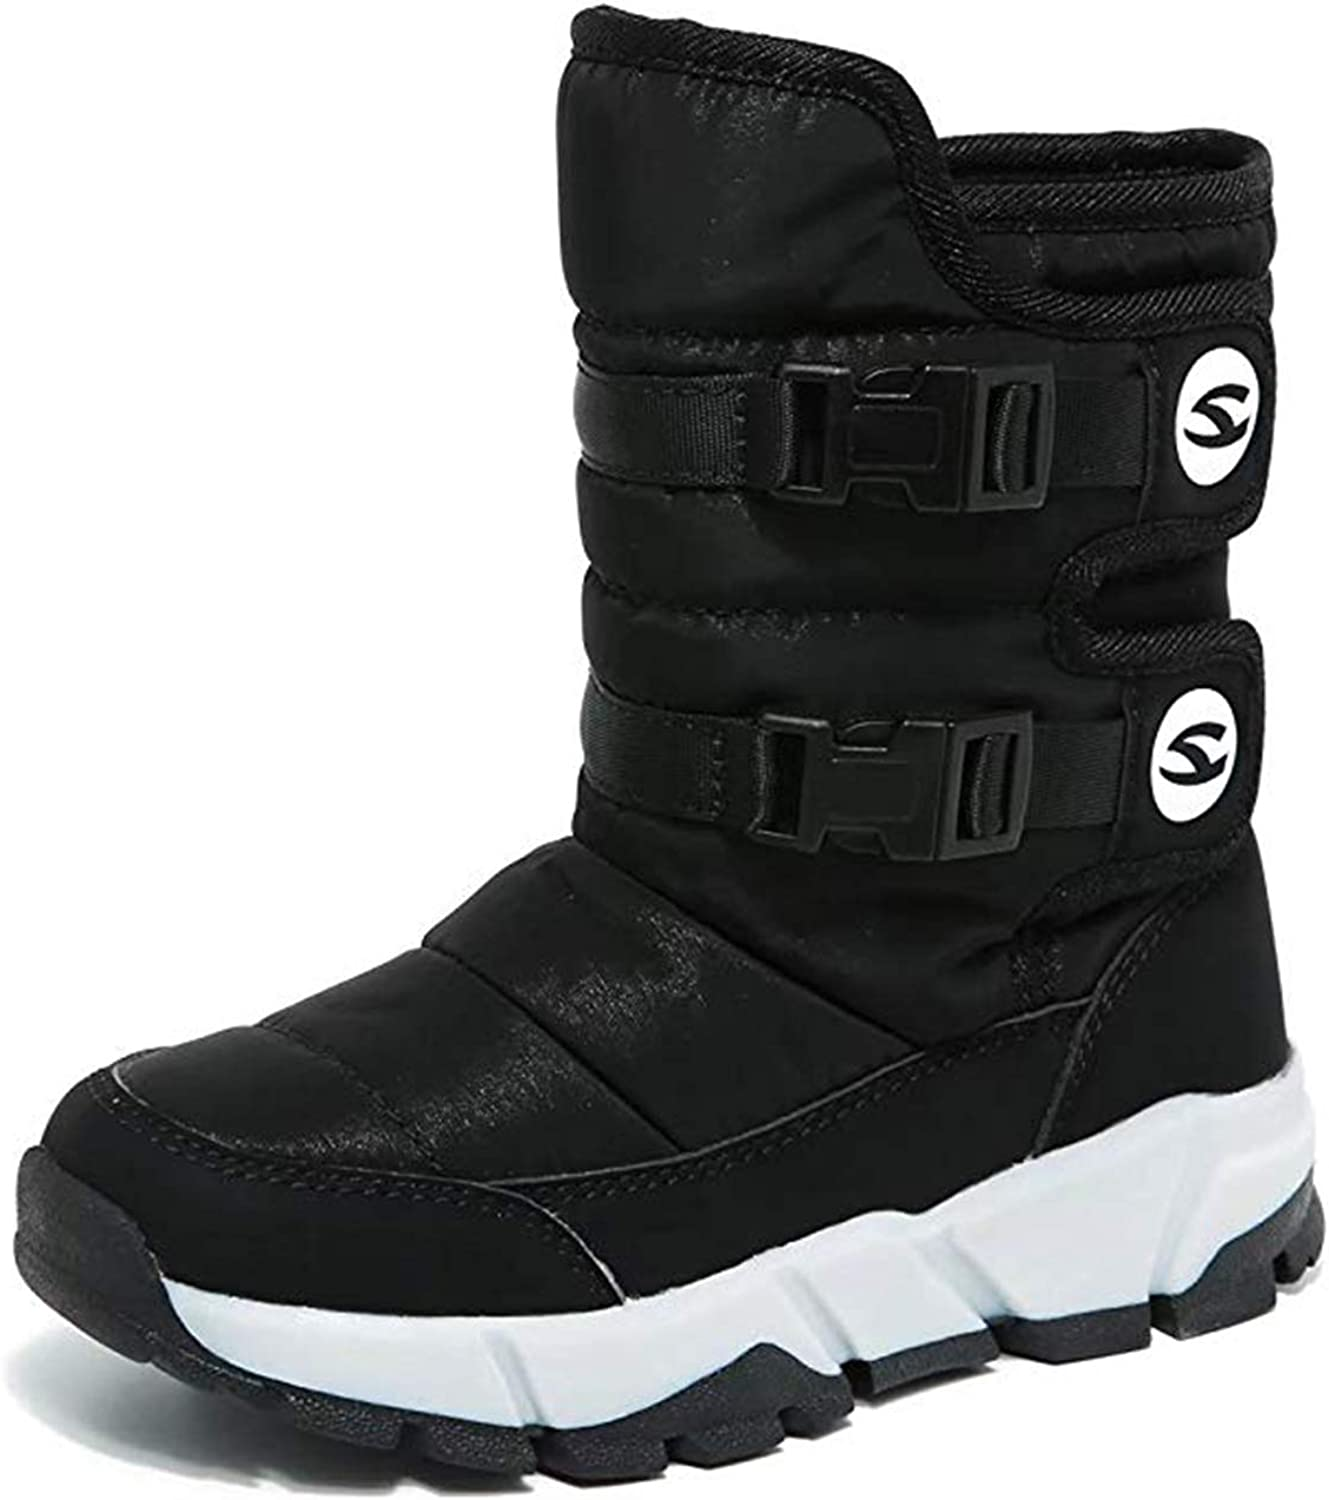 Snow Boots for Boys and Girls Waterproof Outdoor Max 74% OFF Sho Winter Regular discount Warm